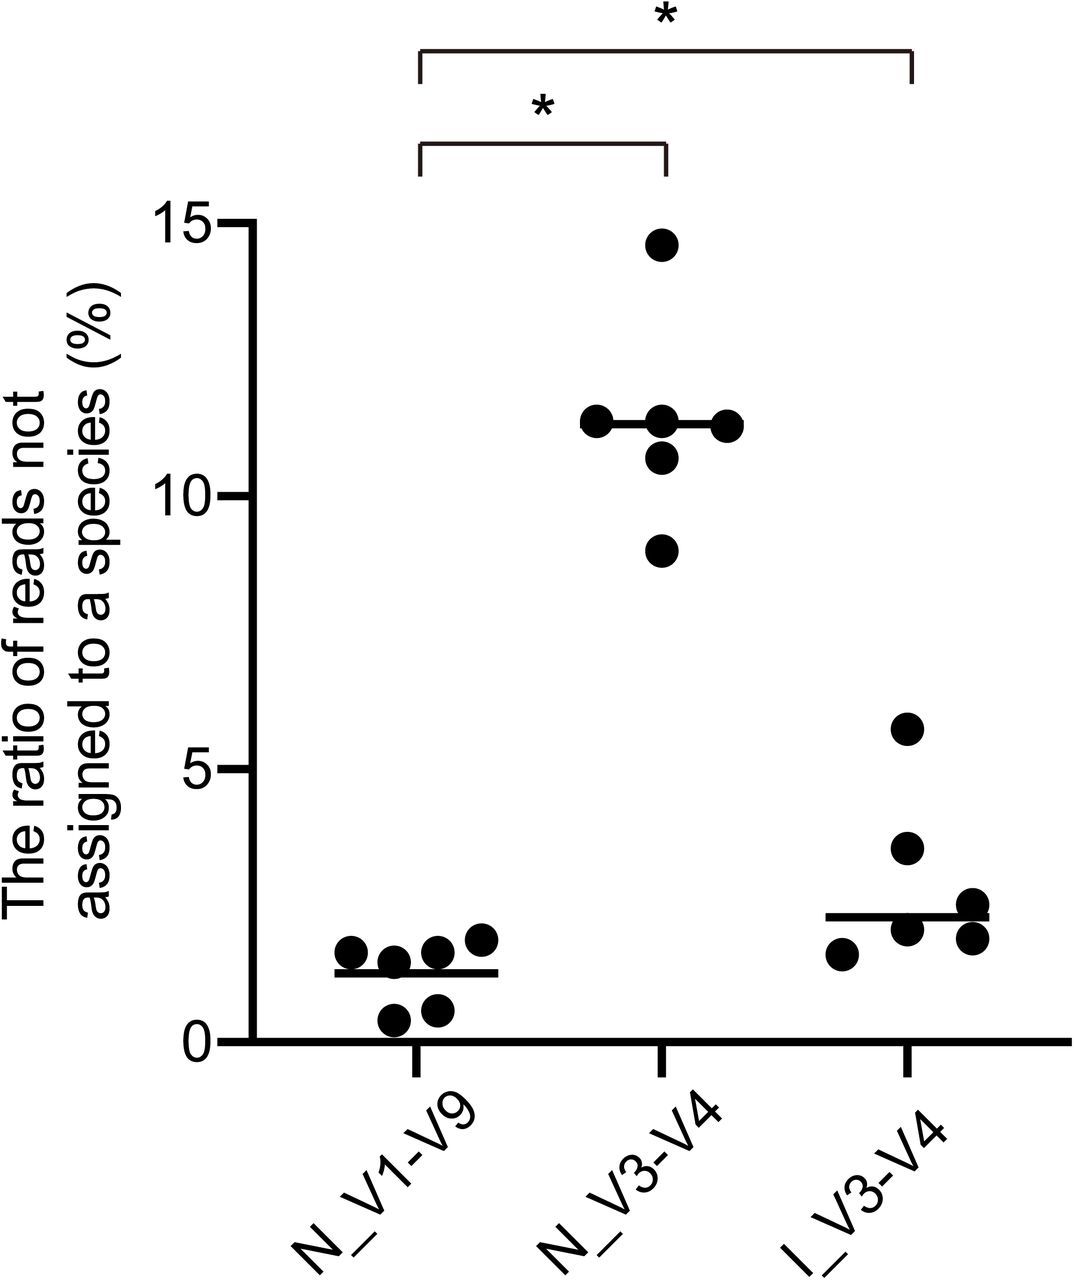 Comparison of taxonomic resolution. The percentages of ambiguous reads not assigned to the species level are plotted for six fecal samples analyzed by MinION™ (N_V1-V9 and N_V3-V4) or MiSeq™ (I_V3-V4). Horizontal bars represent mean values. * P